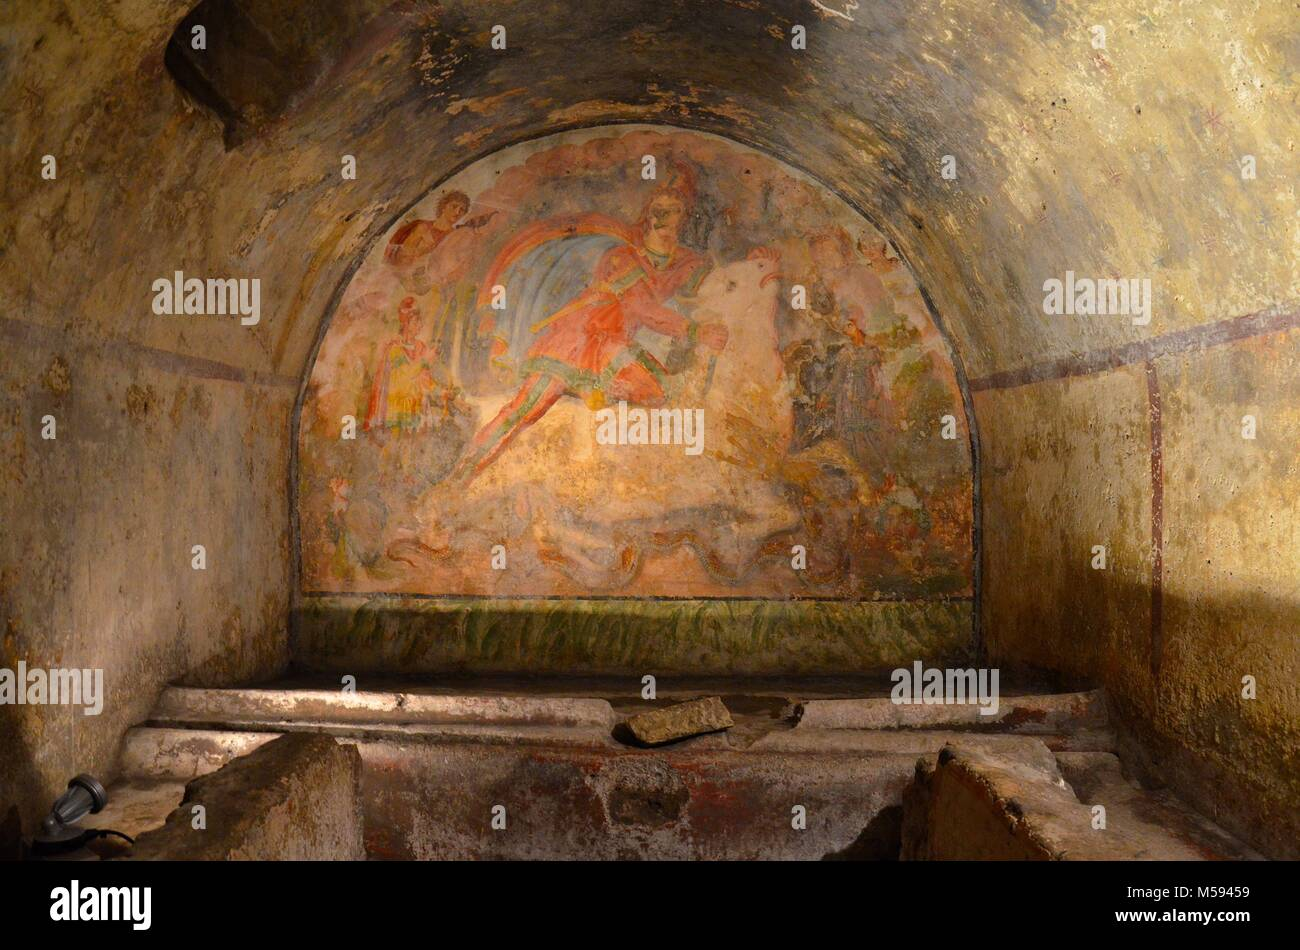 Santa Maria Capua Vetere, a town Close to Naples and Caserta (Campania, Italy): inside the zoroastrian Temple of - Stock Image